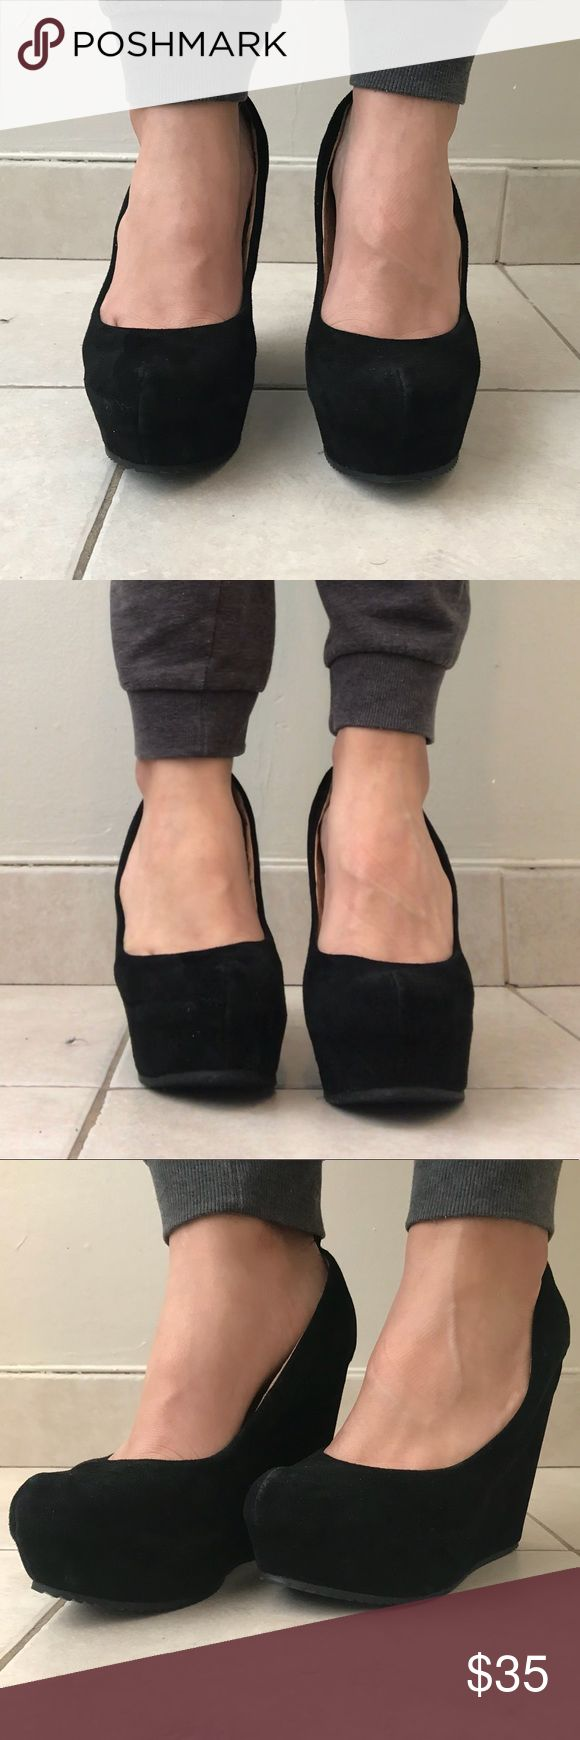 GORGEOUS BLACK ALDO PLATFORM WEDGE HEELS!! GORGEOUS BLACK ALDO PLATFORM WEDGE HEELS!! Worn once or twice! Has been laying in my closet... Extremely comformtable!! Comes with free gift!! Fits 8.5-9 Aldo Shoes Platforms